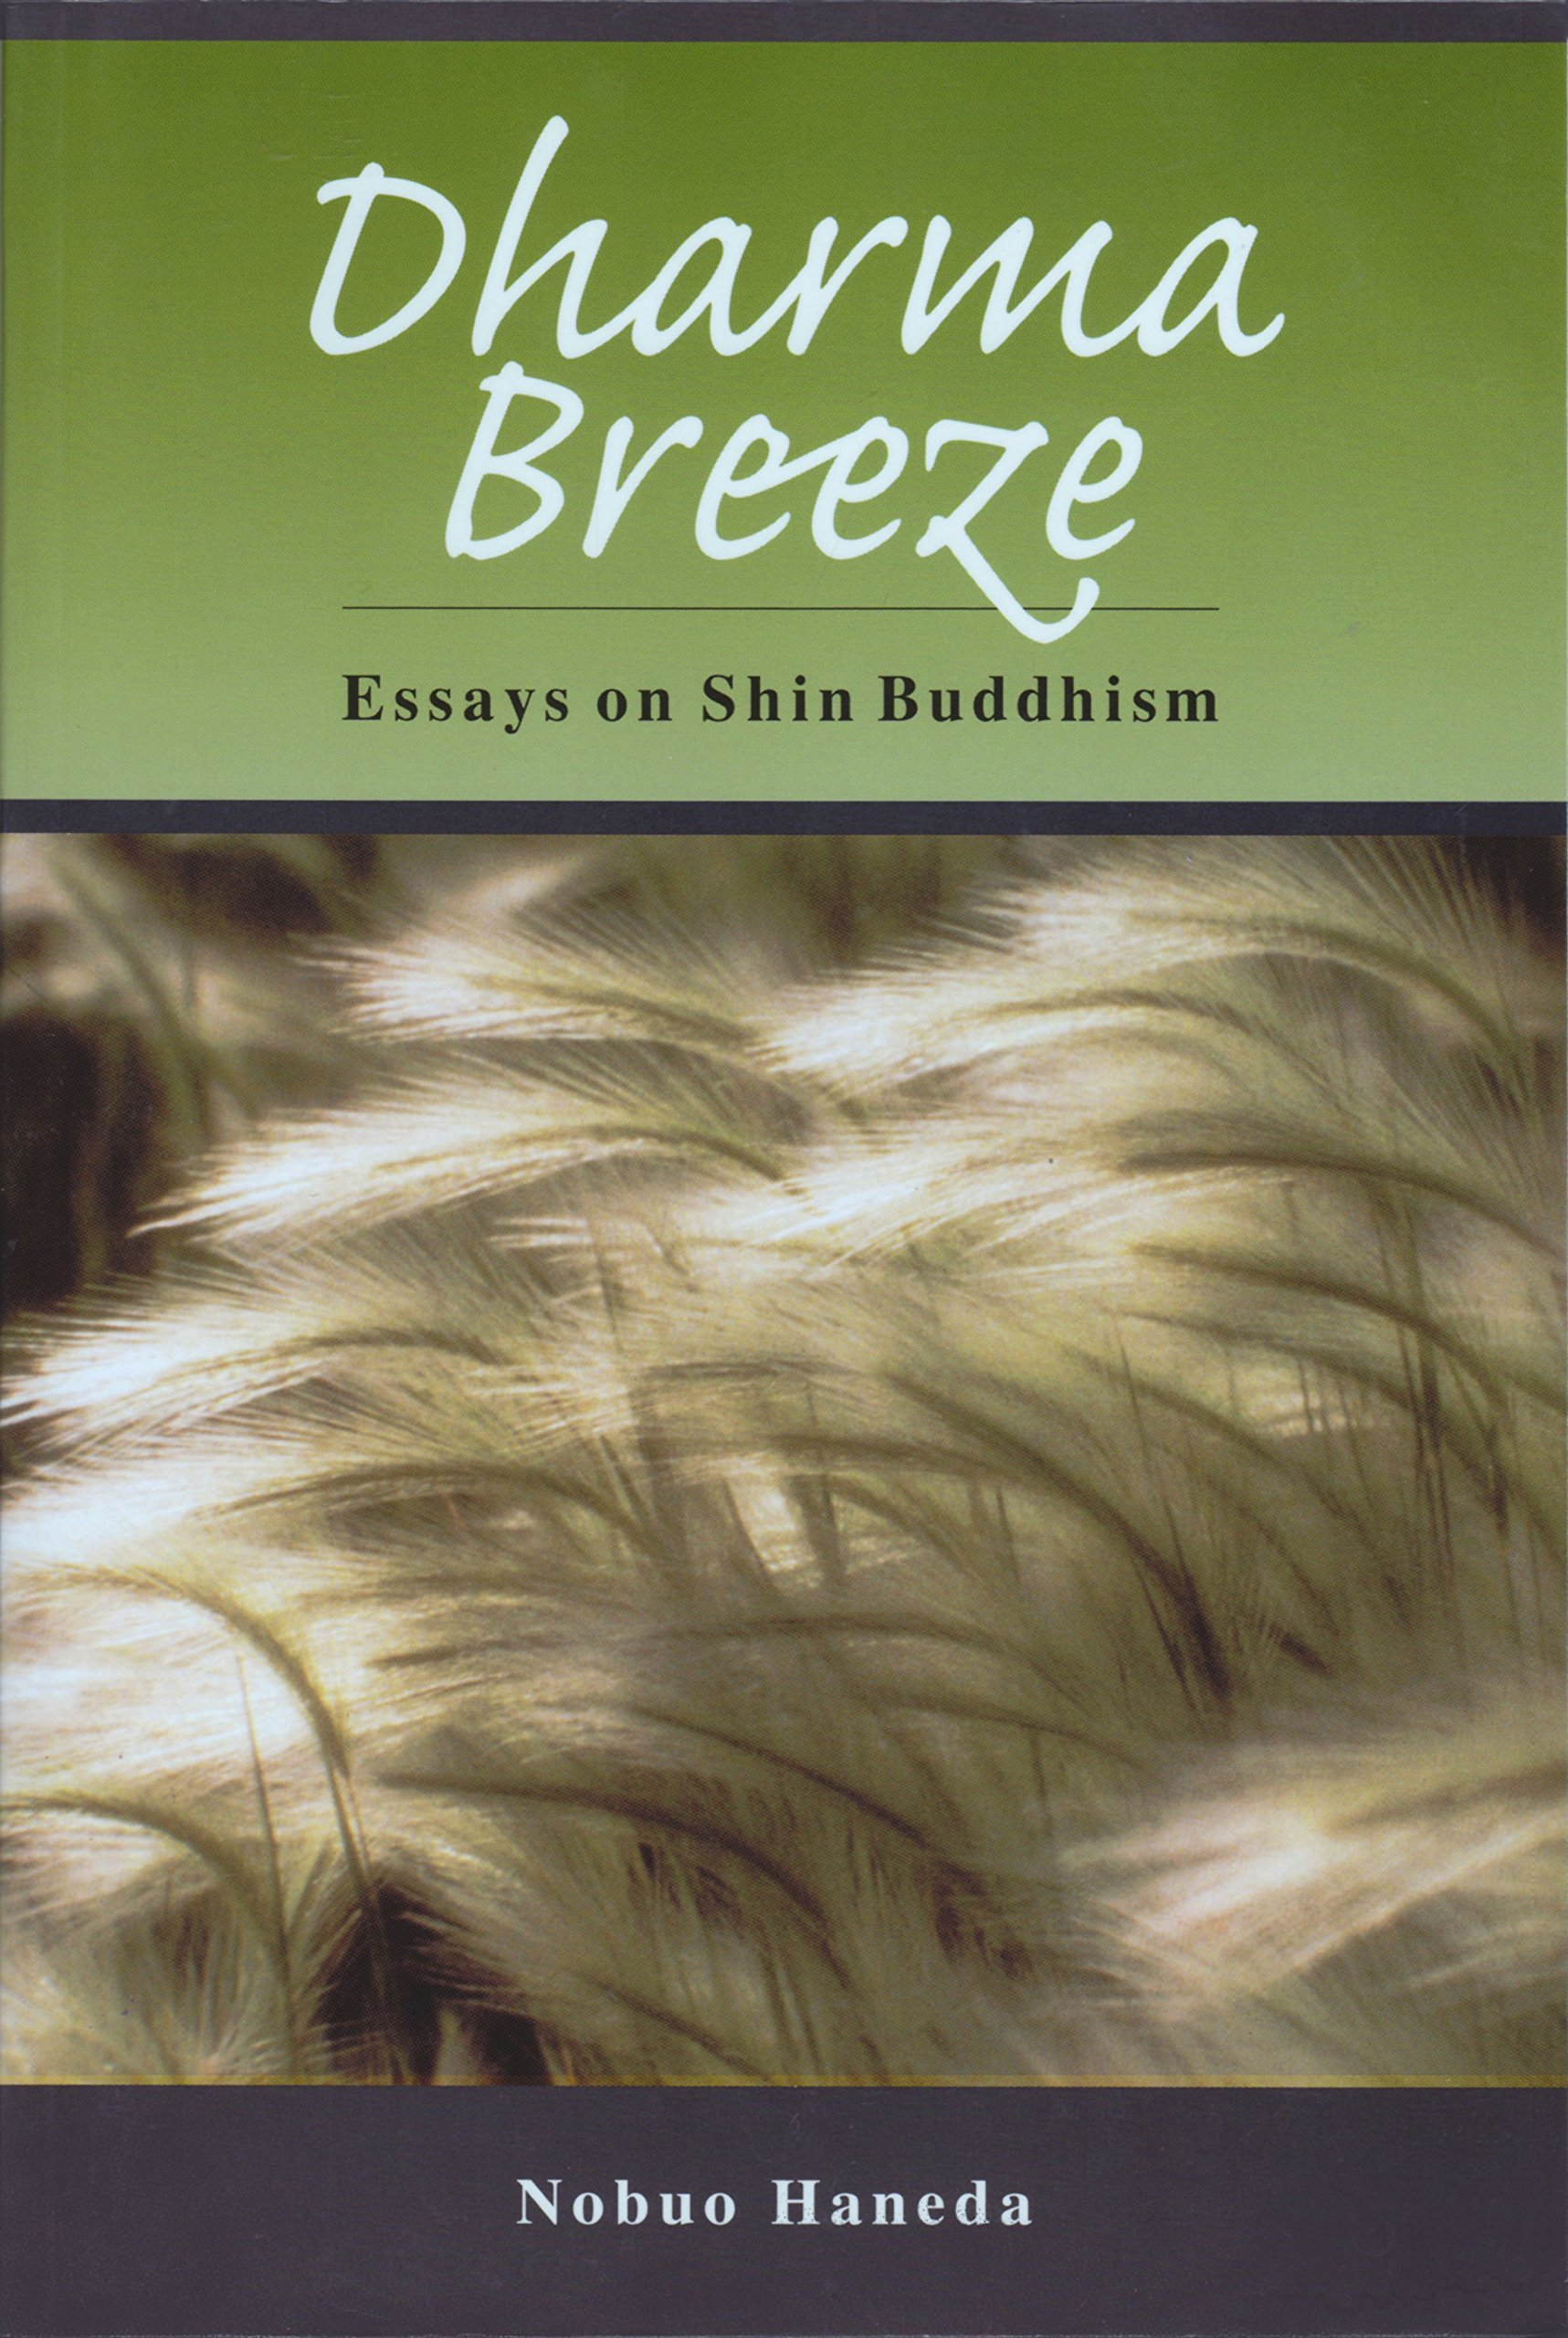 dharma breeze essays on shin buddhism nobuo haneda dharma breeze essays on shin buddhism nobuo haneda 9780979078309 com books